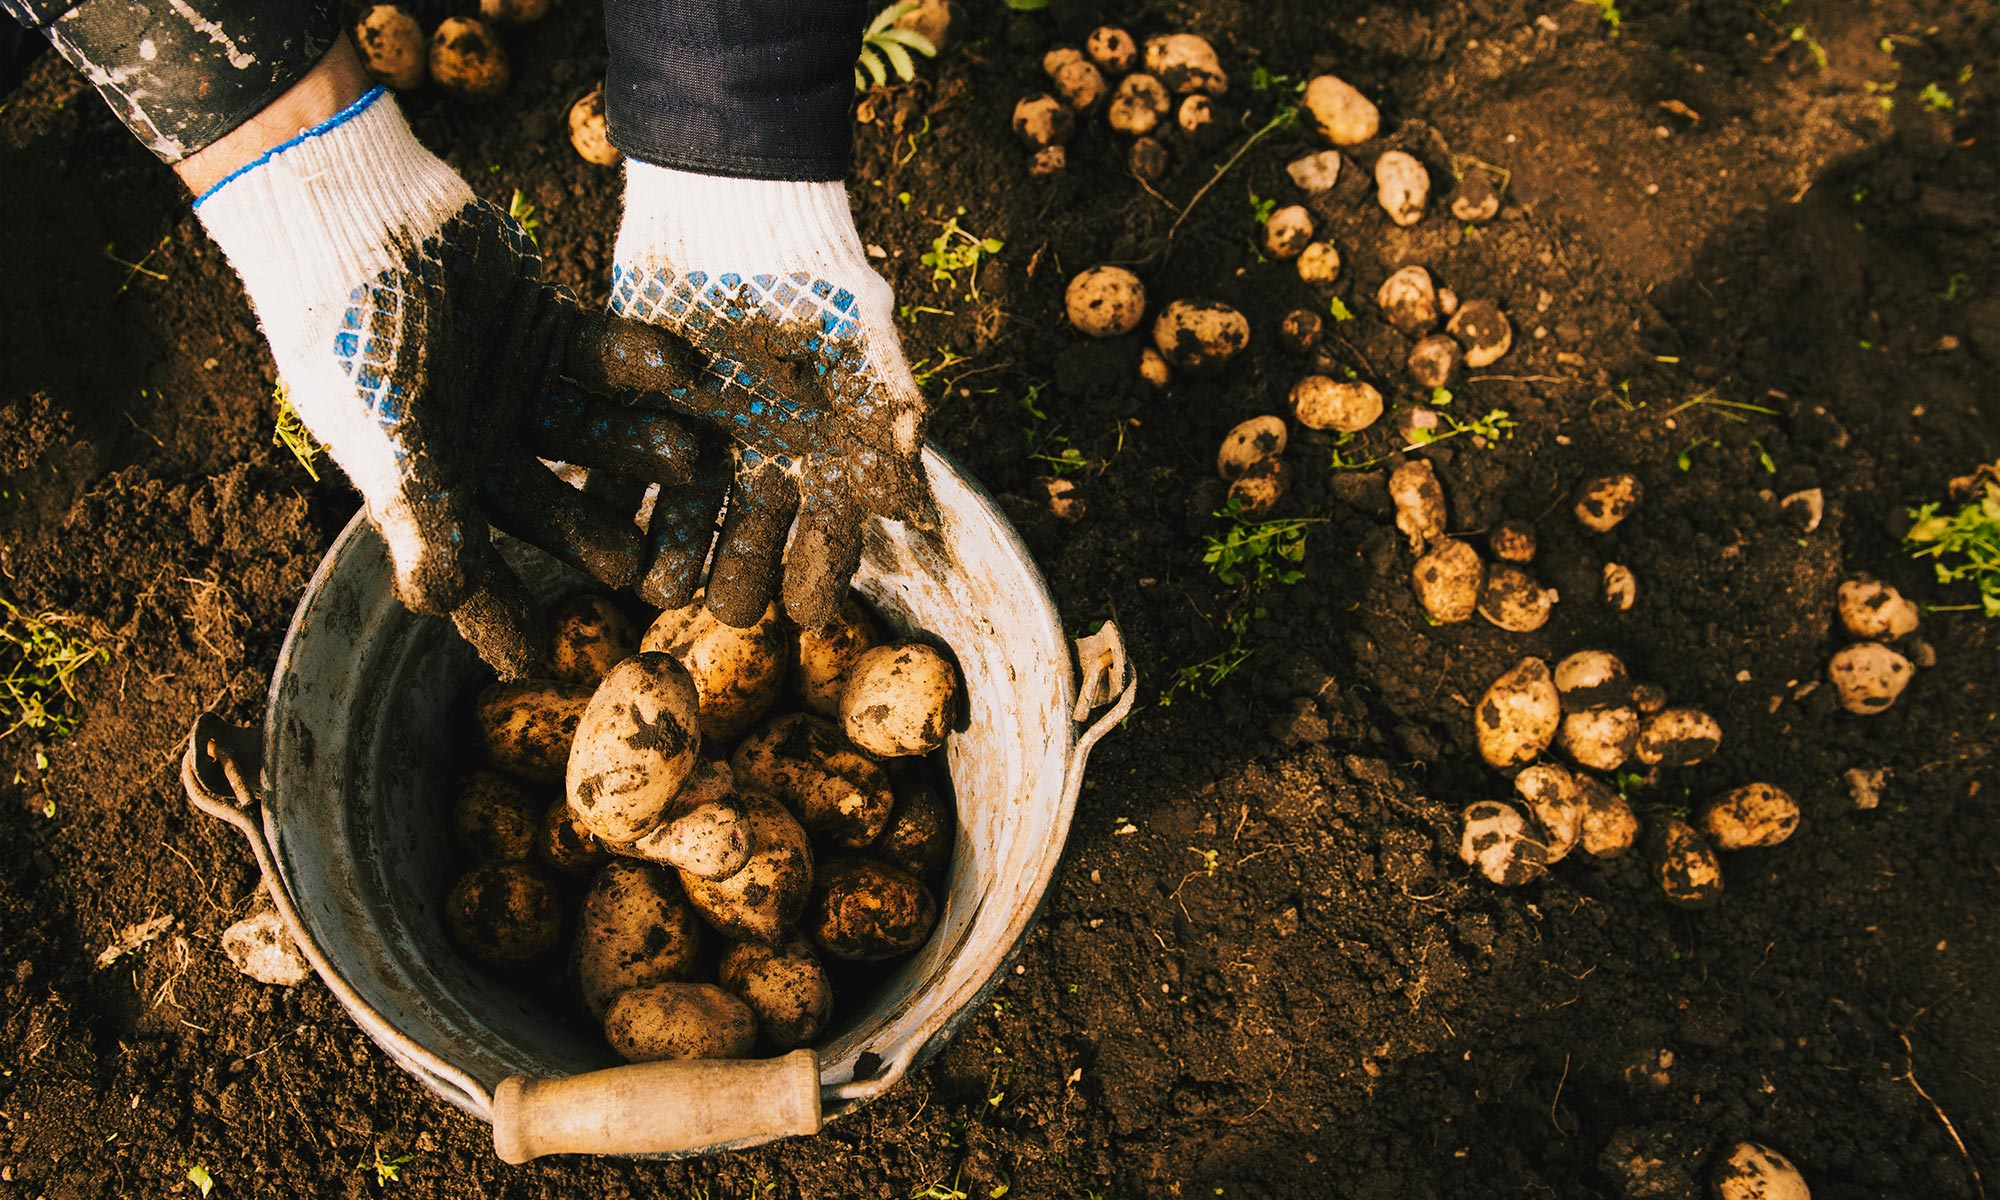 Gardener harvesting potatoes.